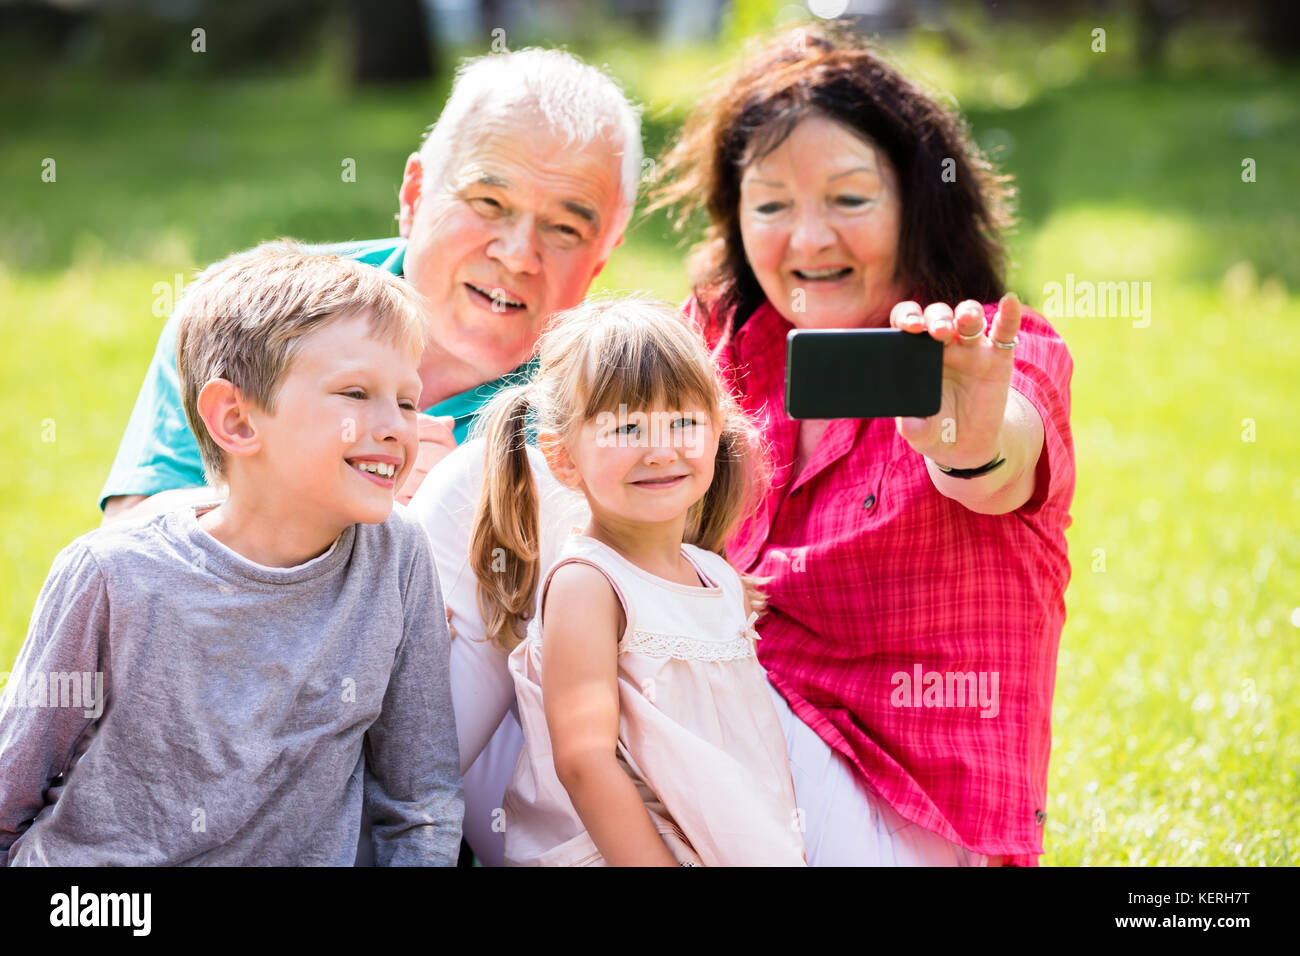 Happy Family Taking Selfie With Phone In Park Stock Photo